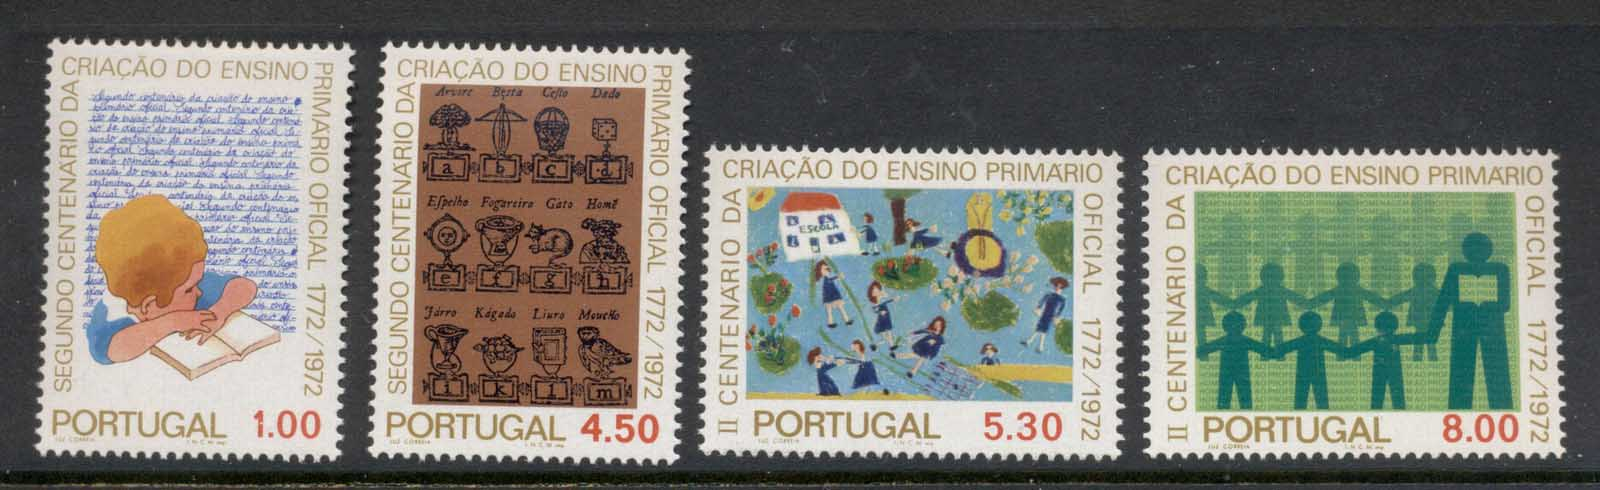 Portugal 1973 Primary State School Education MLH